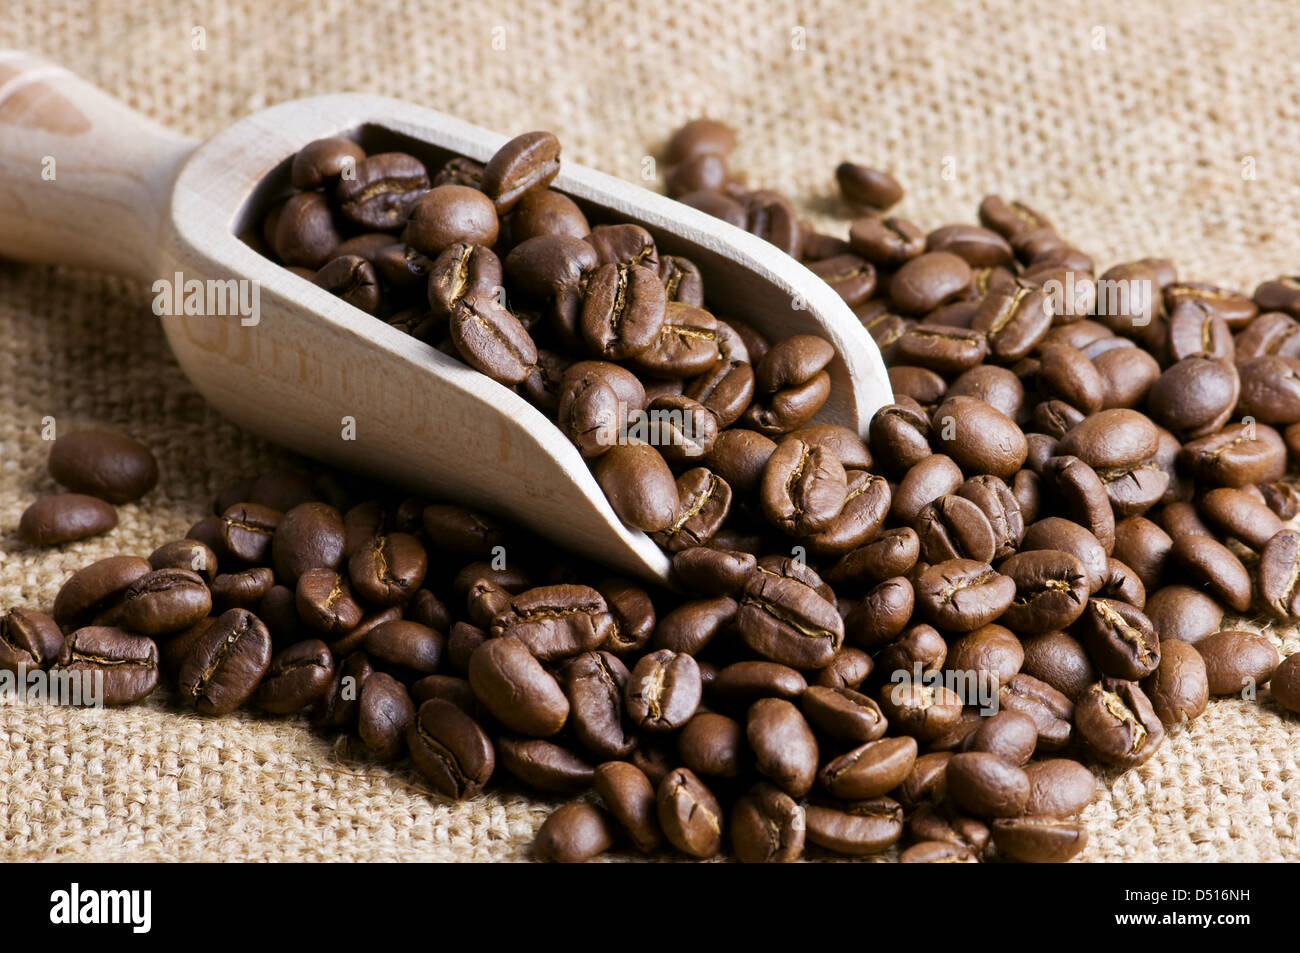 roasted coffee bean close up - Stock Image